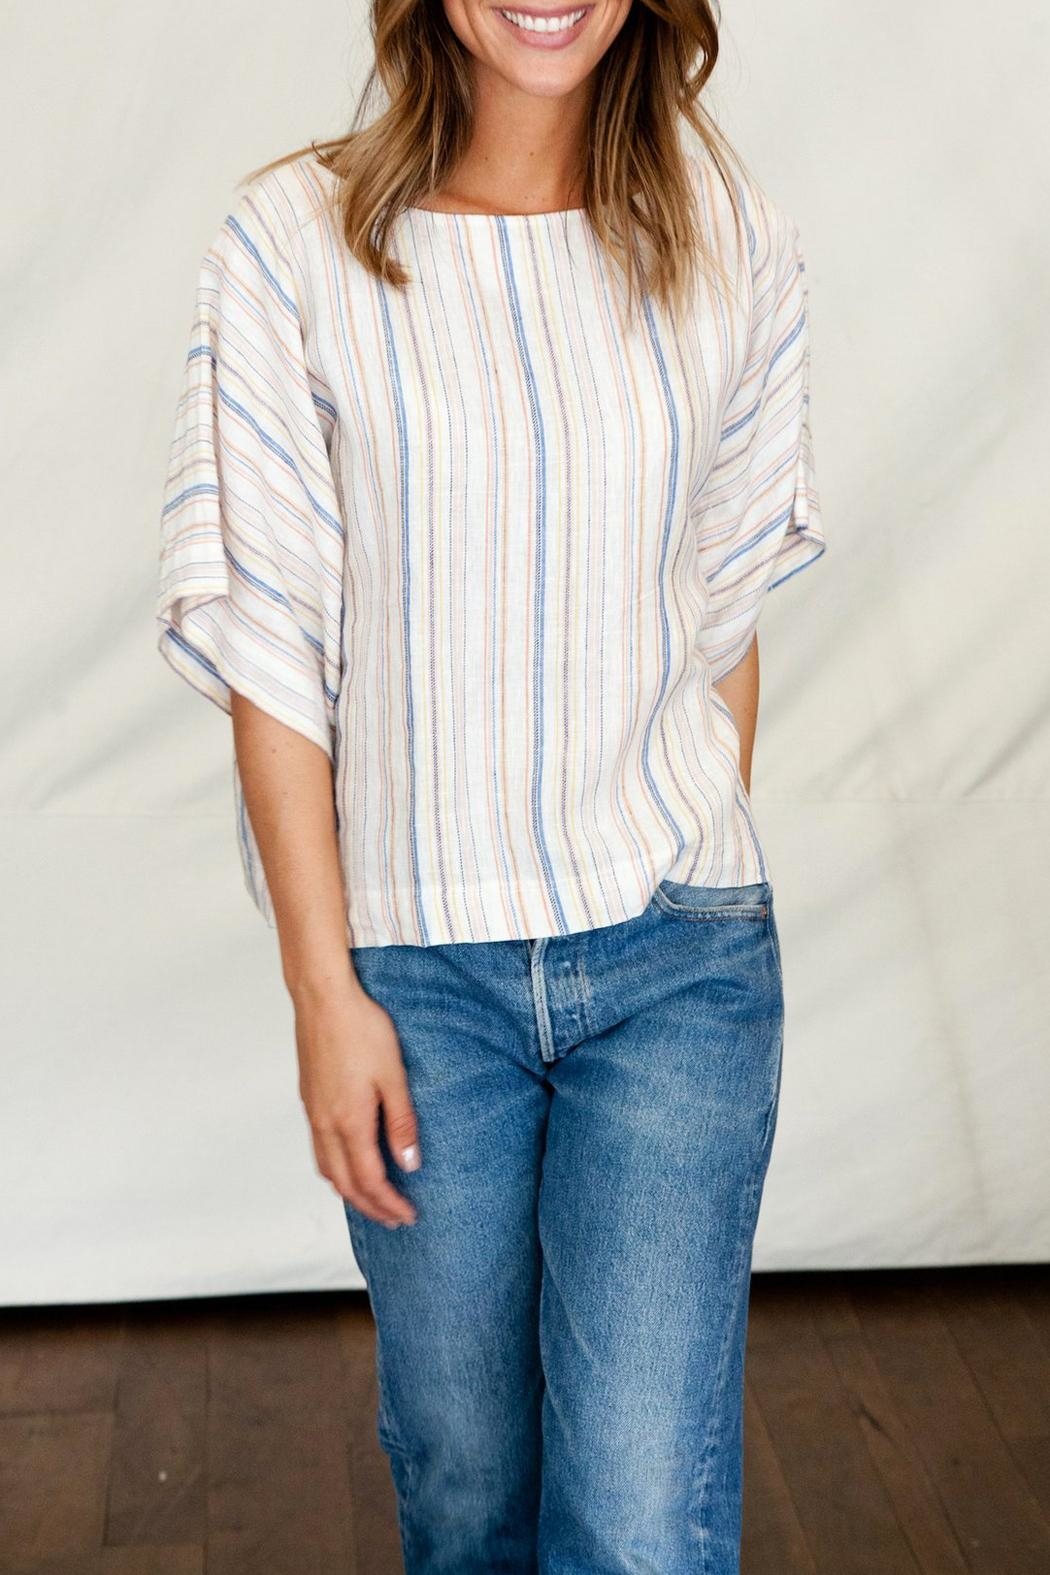 Trovata KIRI DOLMAN STRIPES TOP